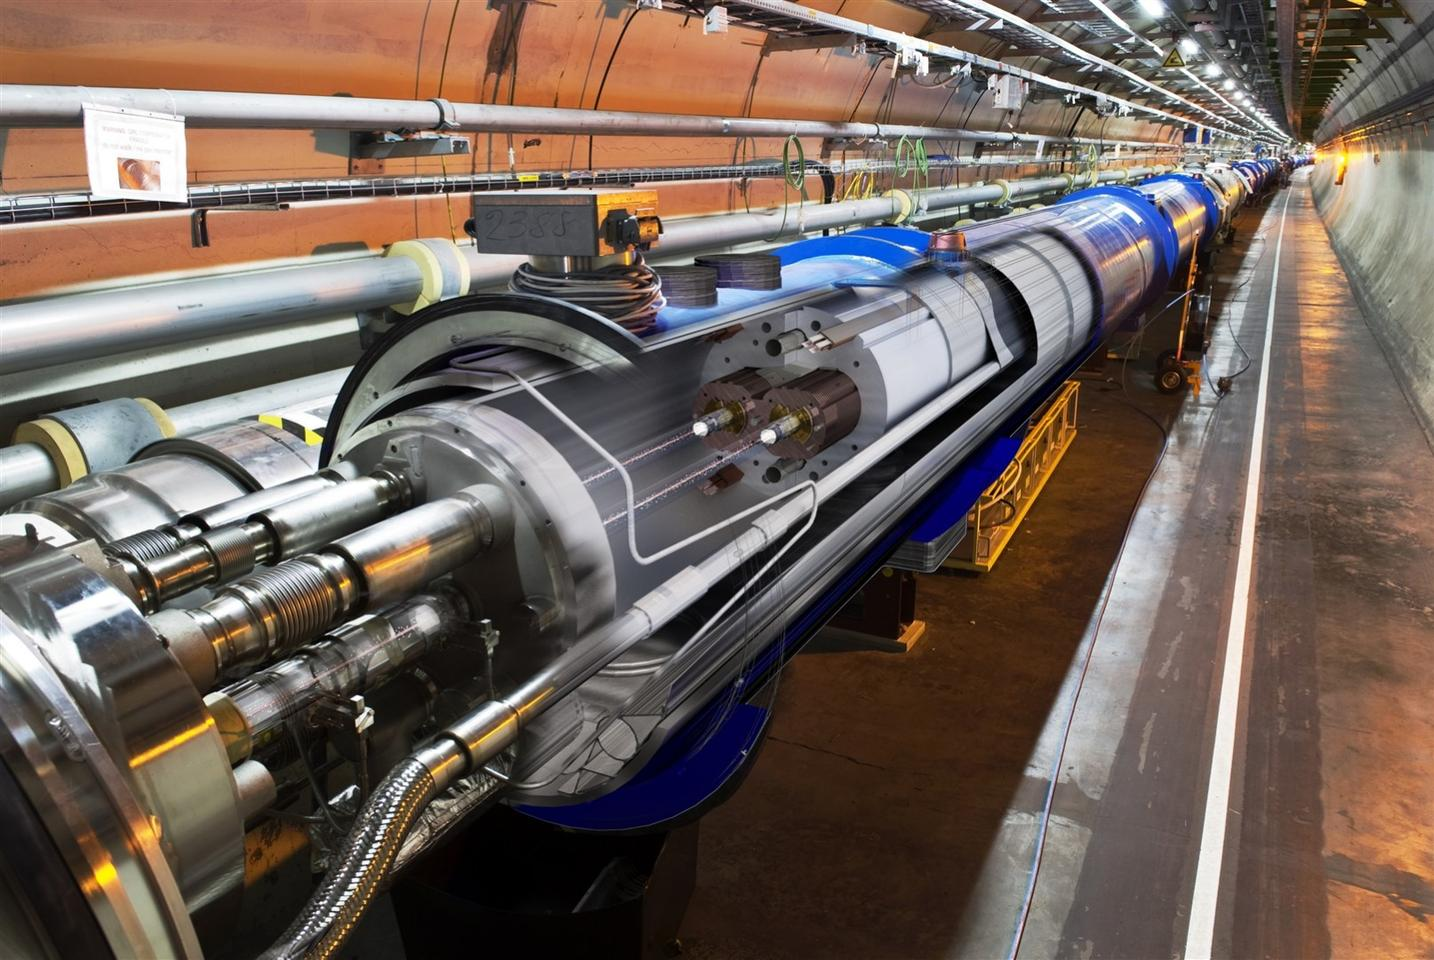 A 3D cross-sectionview of the LHC